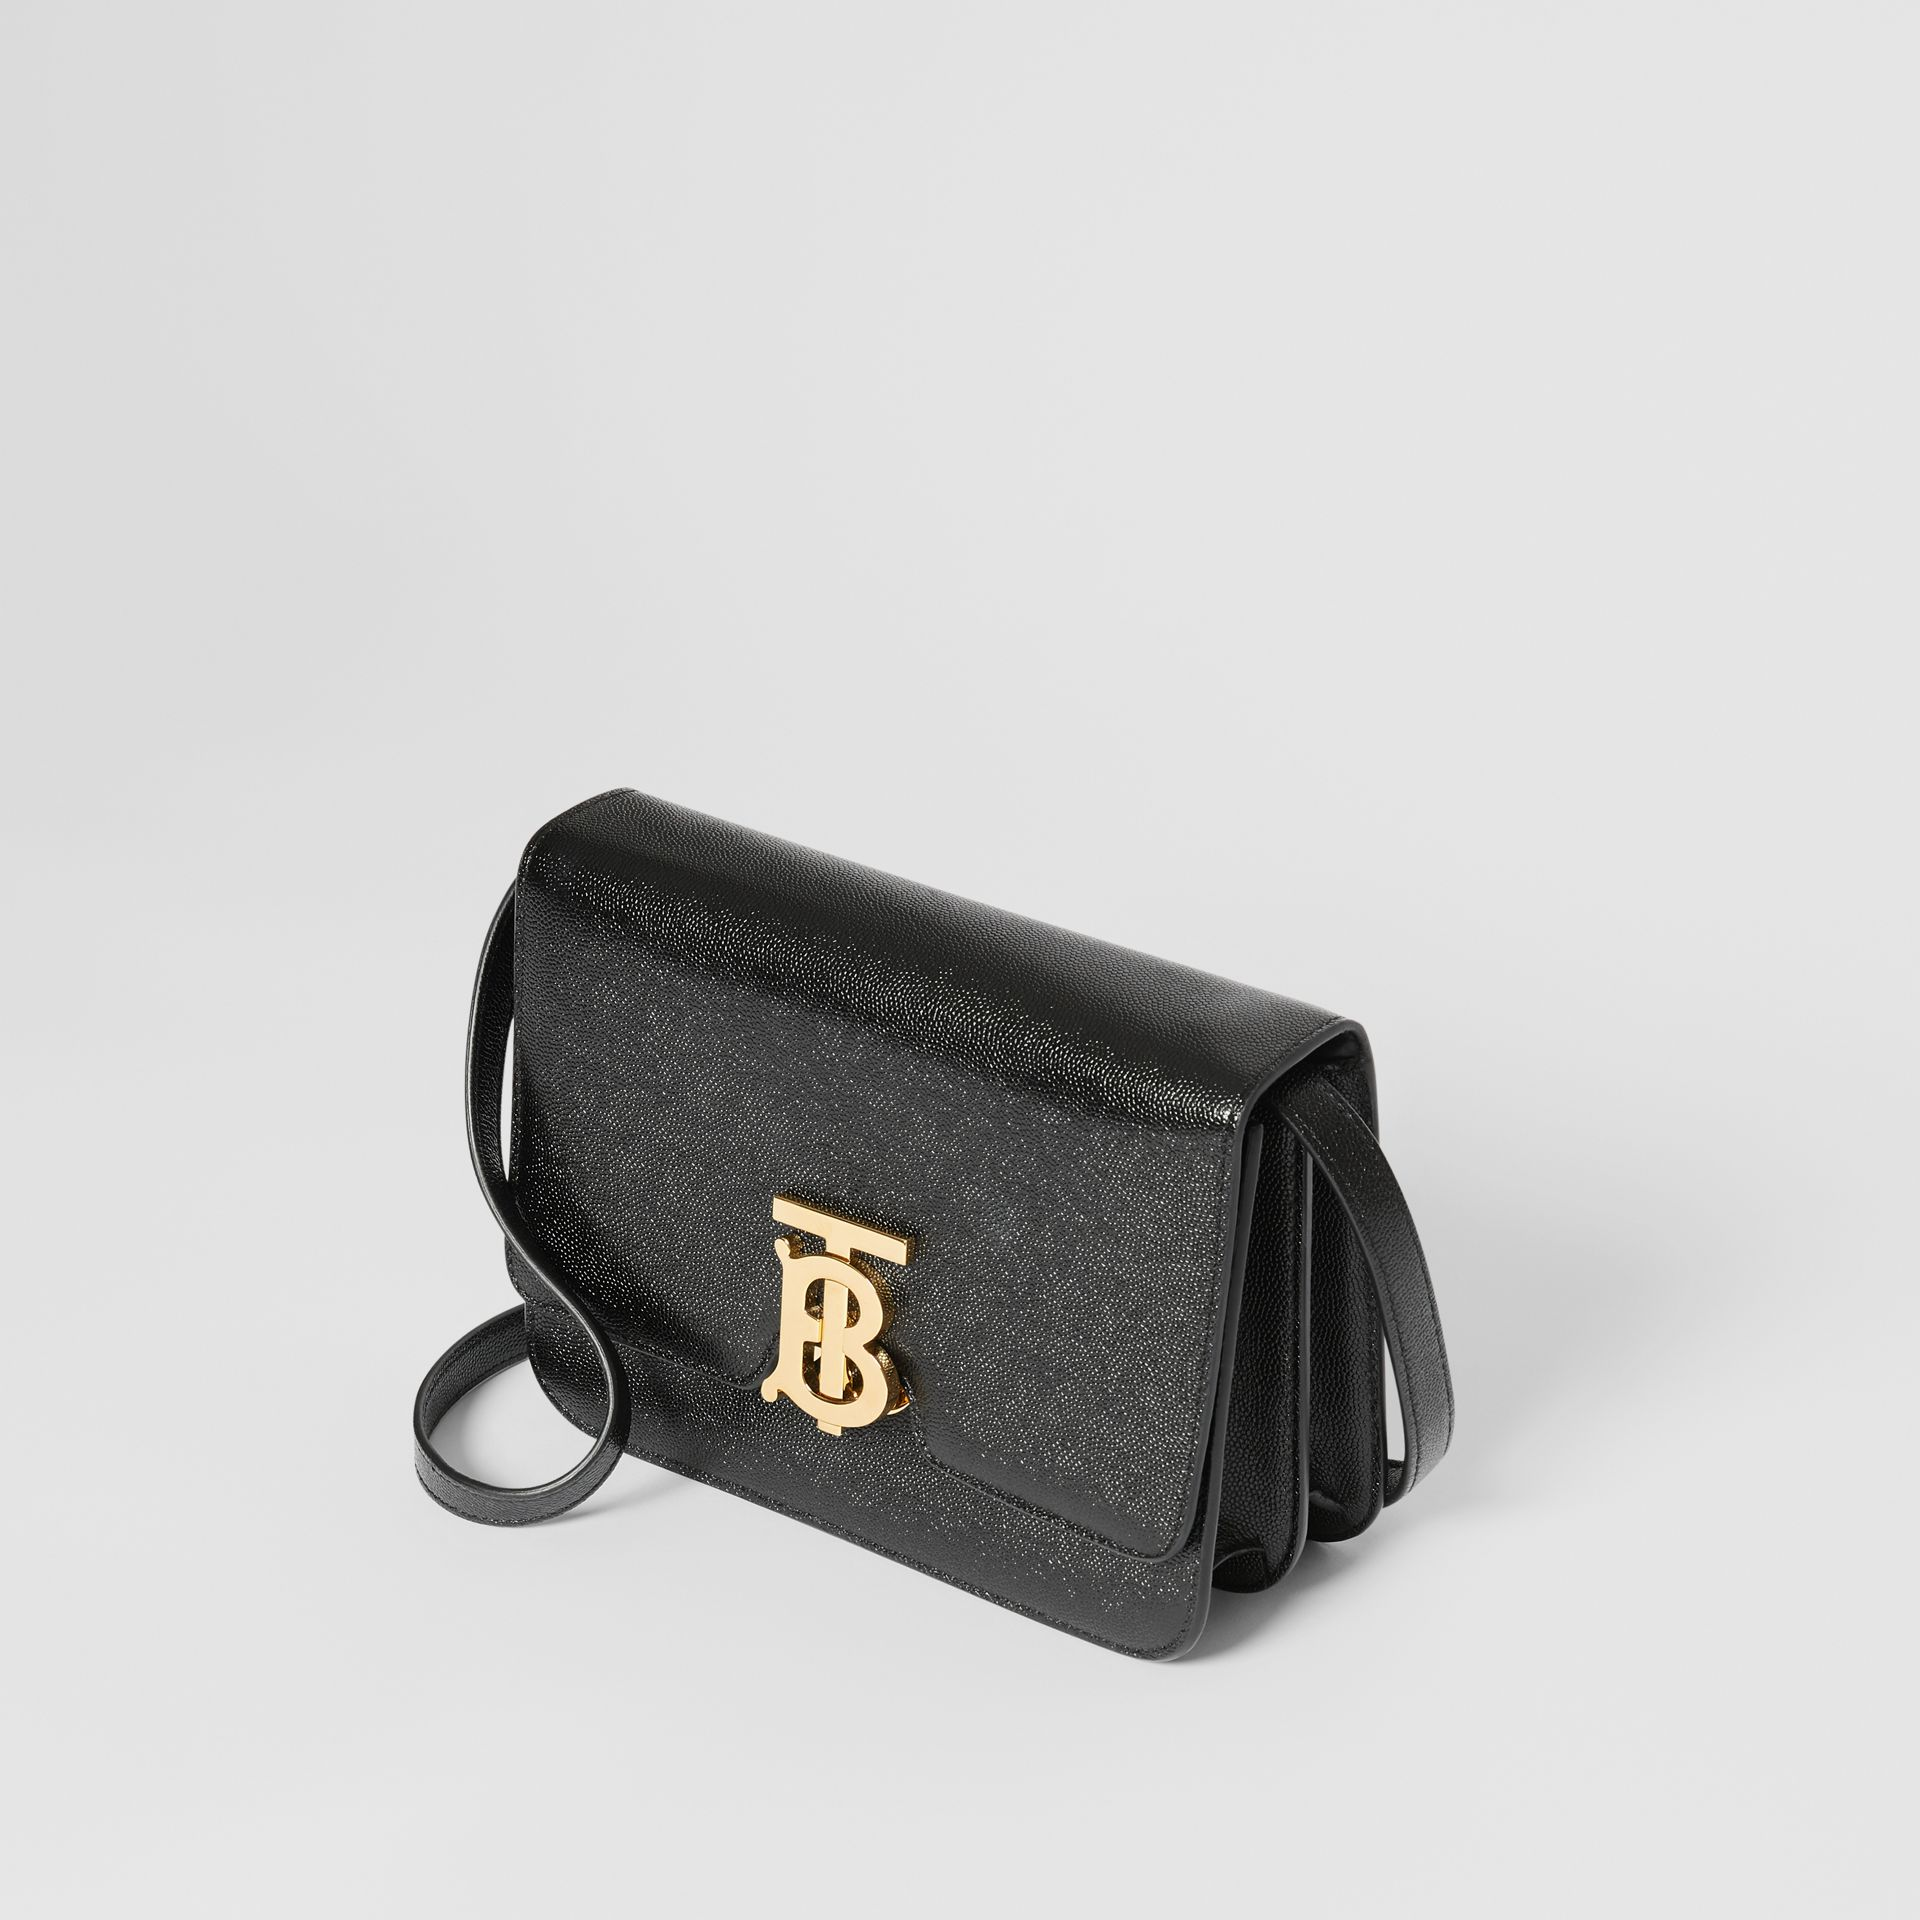 Small Grainy Leather TB Bag in Black - Women | Burberry Canada - gallery image 3